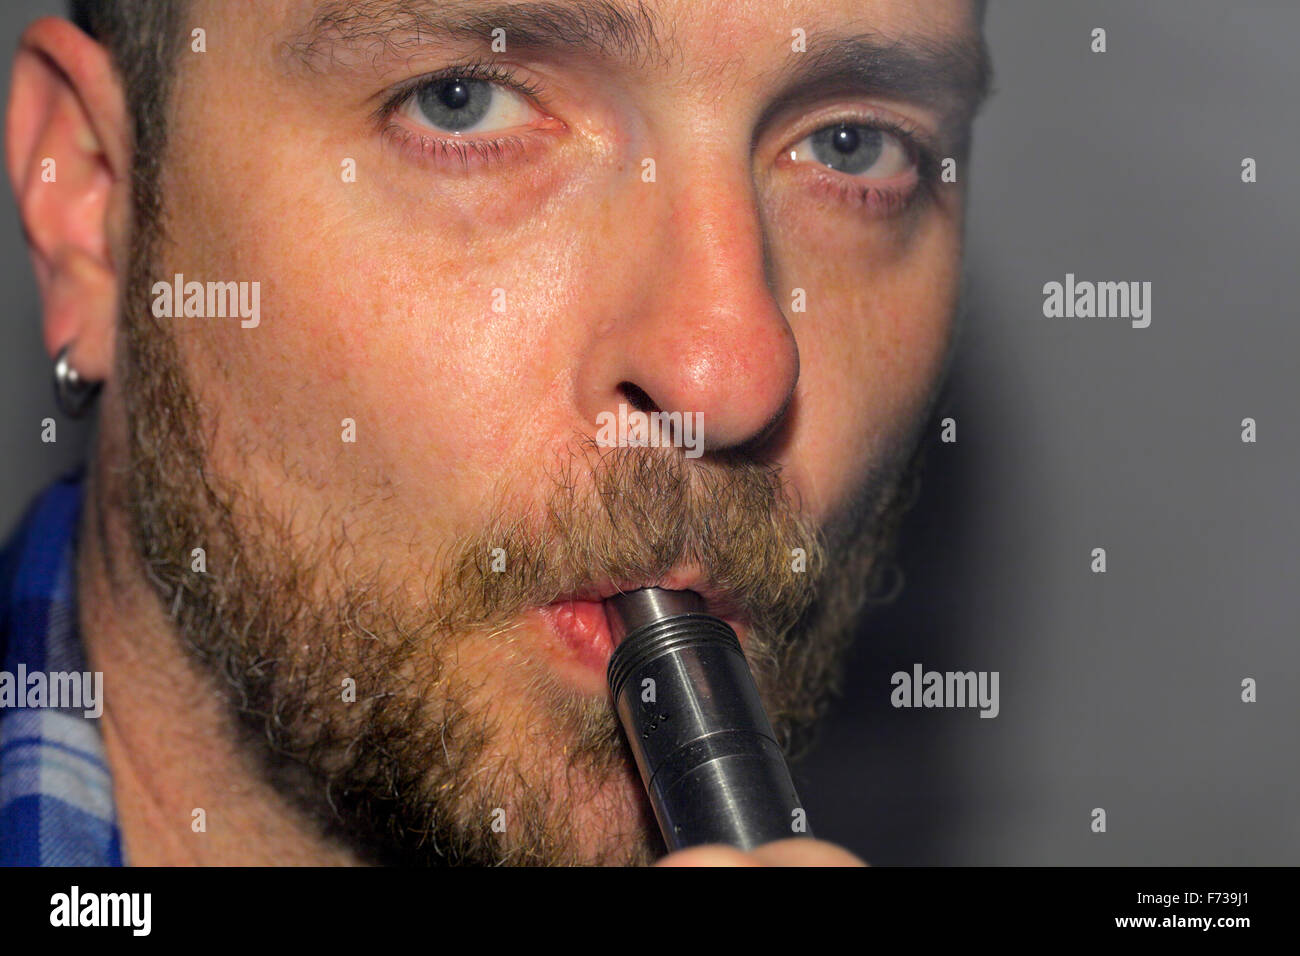 Man inhaling from a large e-cigarette. - Stock Image